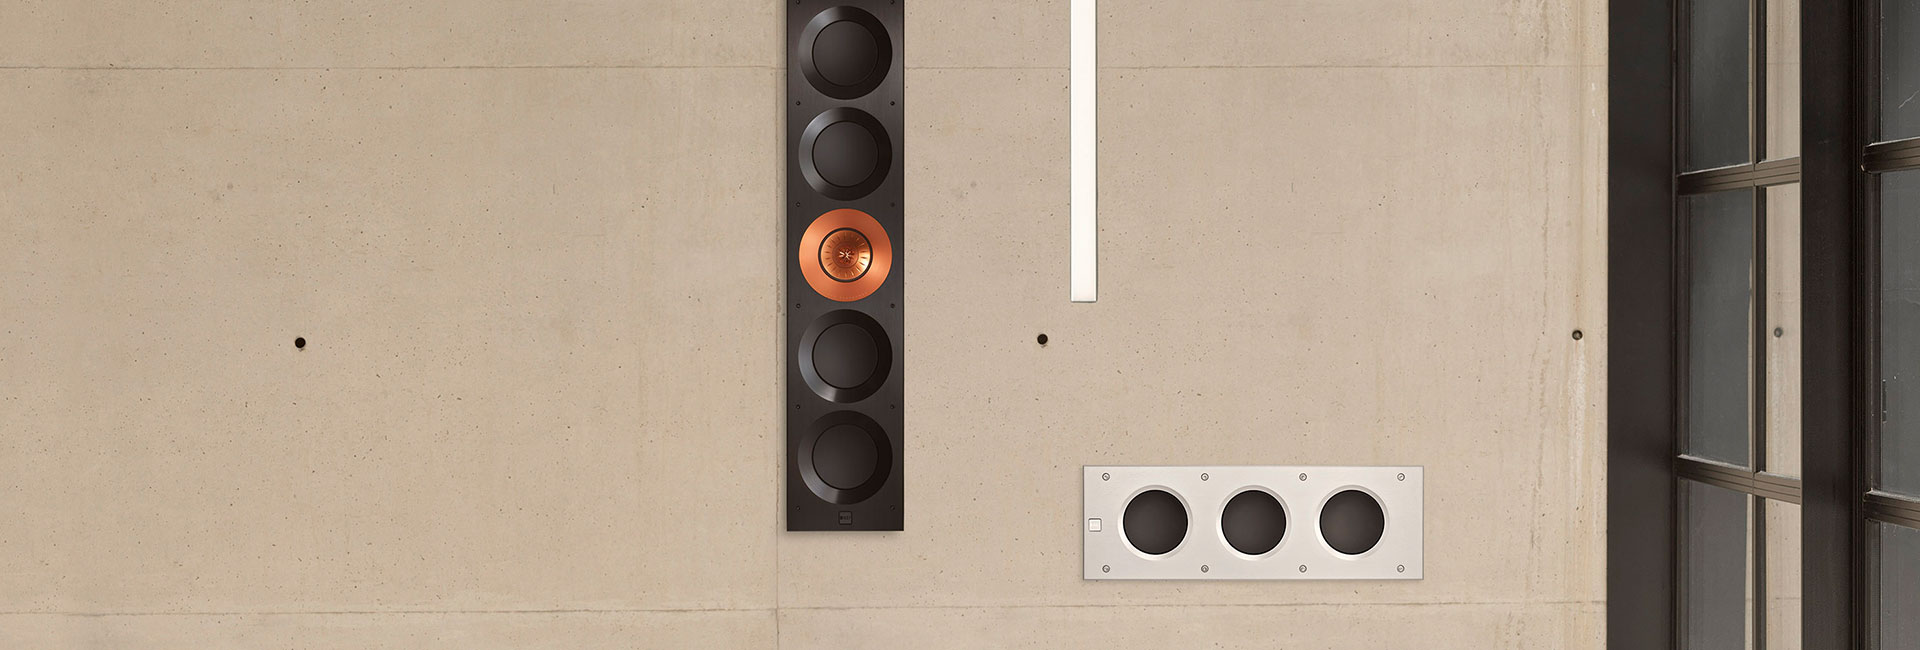 KEF Custom Installation Architectural Subwoofers